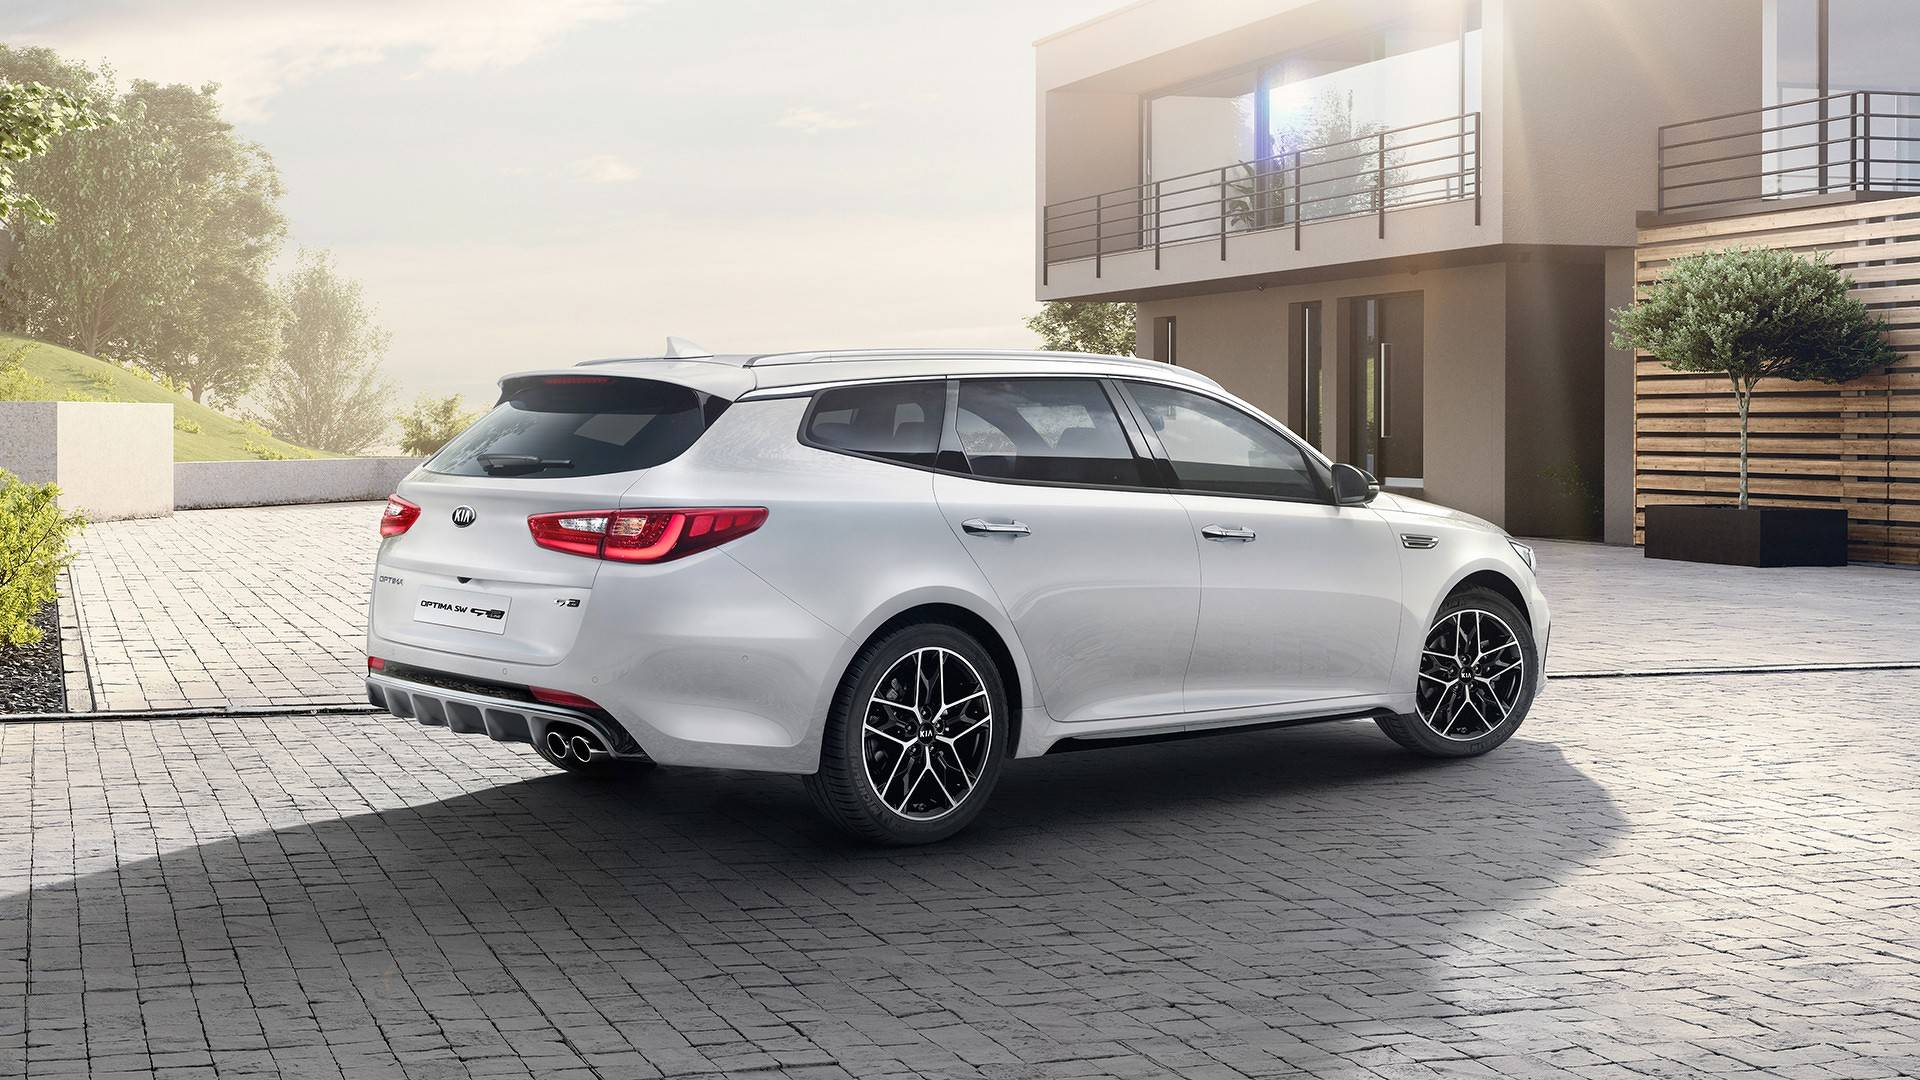 2018 kia optima facelift europe (3)